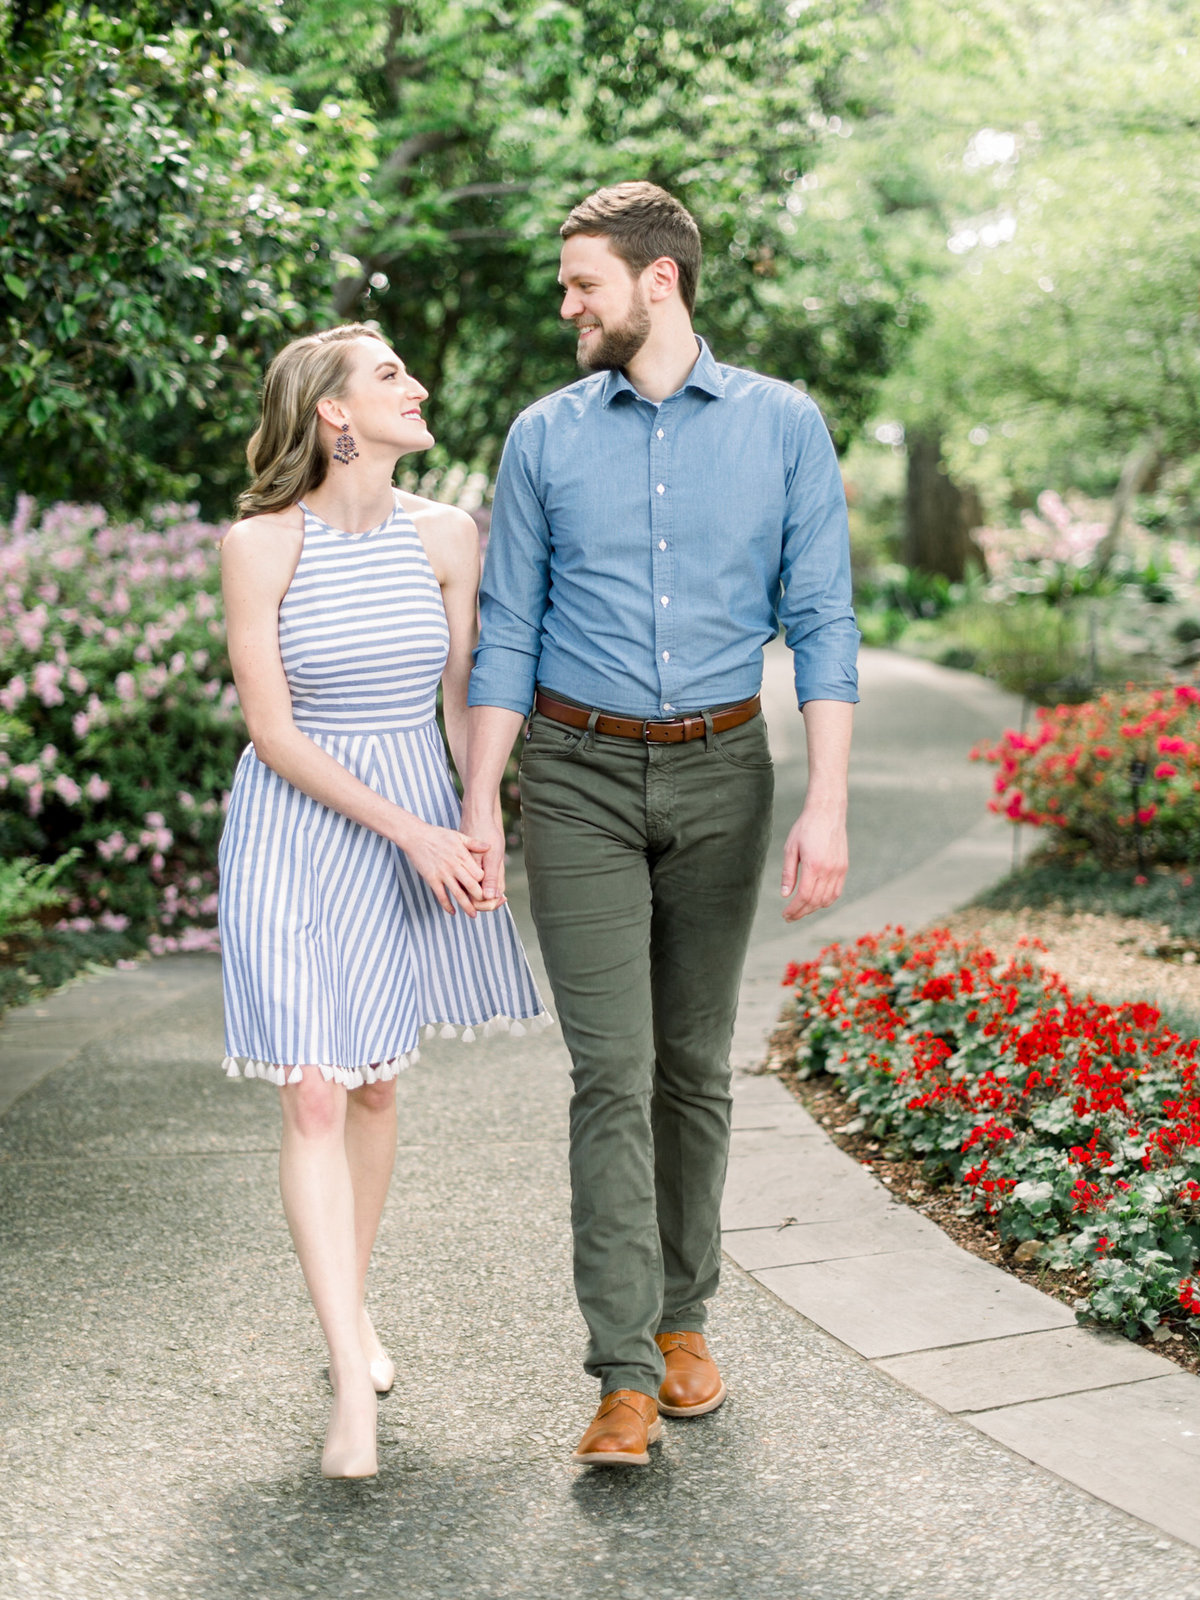 Courtney Hanson Photography - Dallas Spring Engagement Photos at Dallas Arboretum-2553